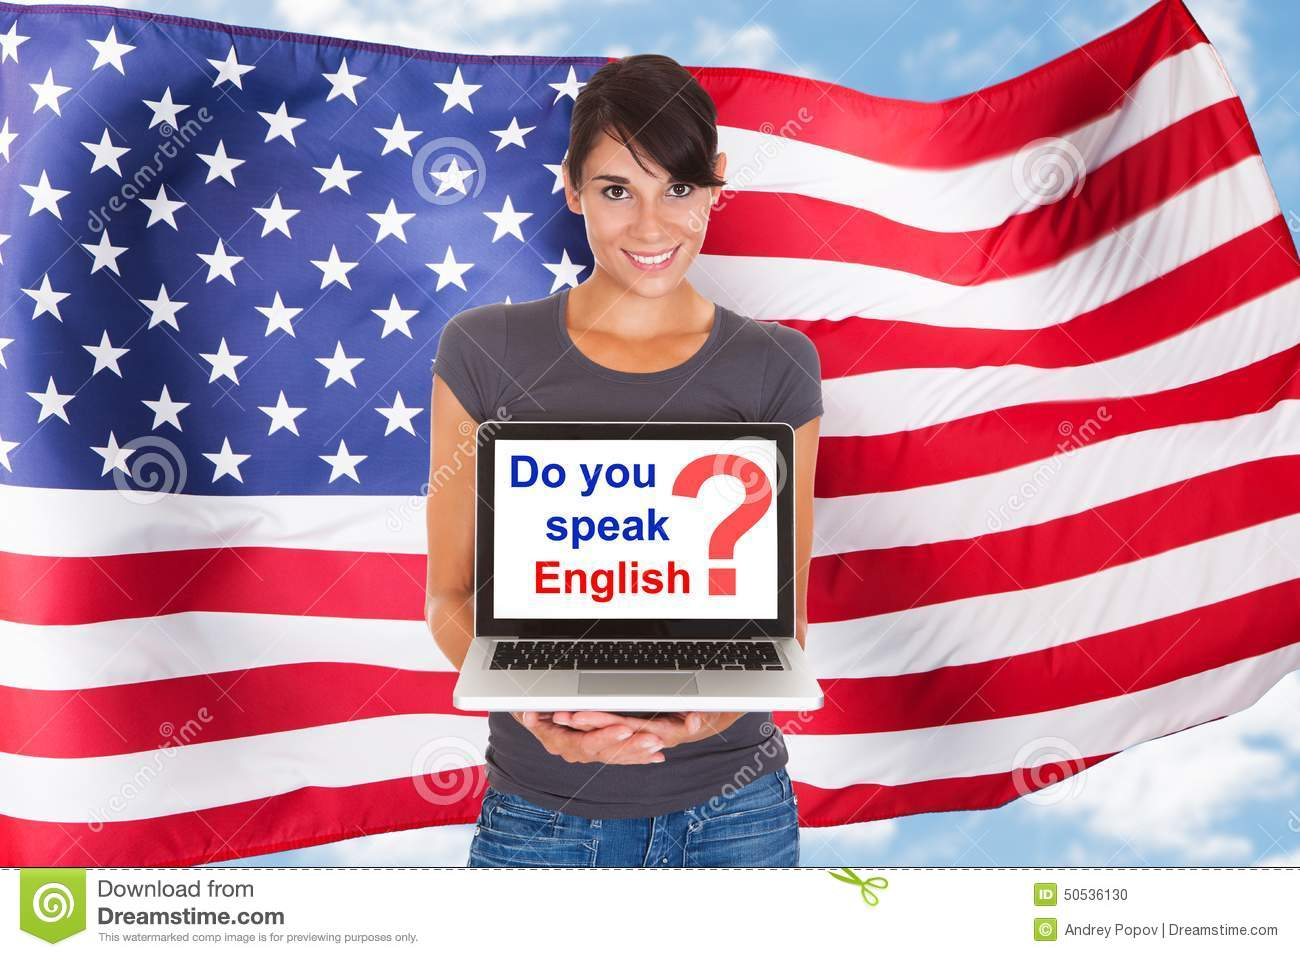 Five tips for learning to speak English like an American